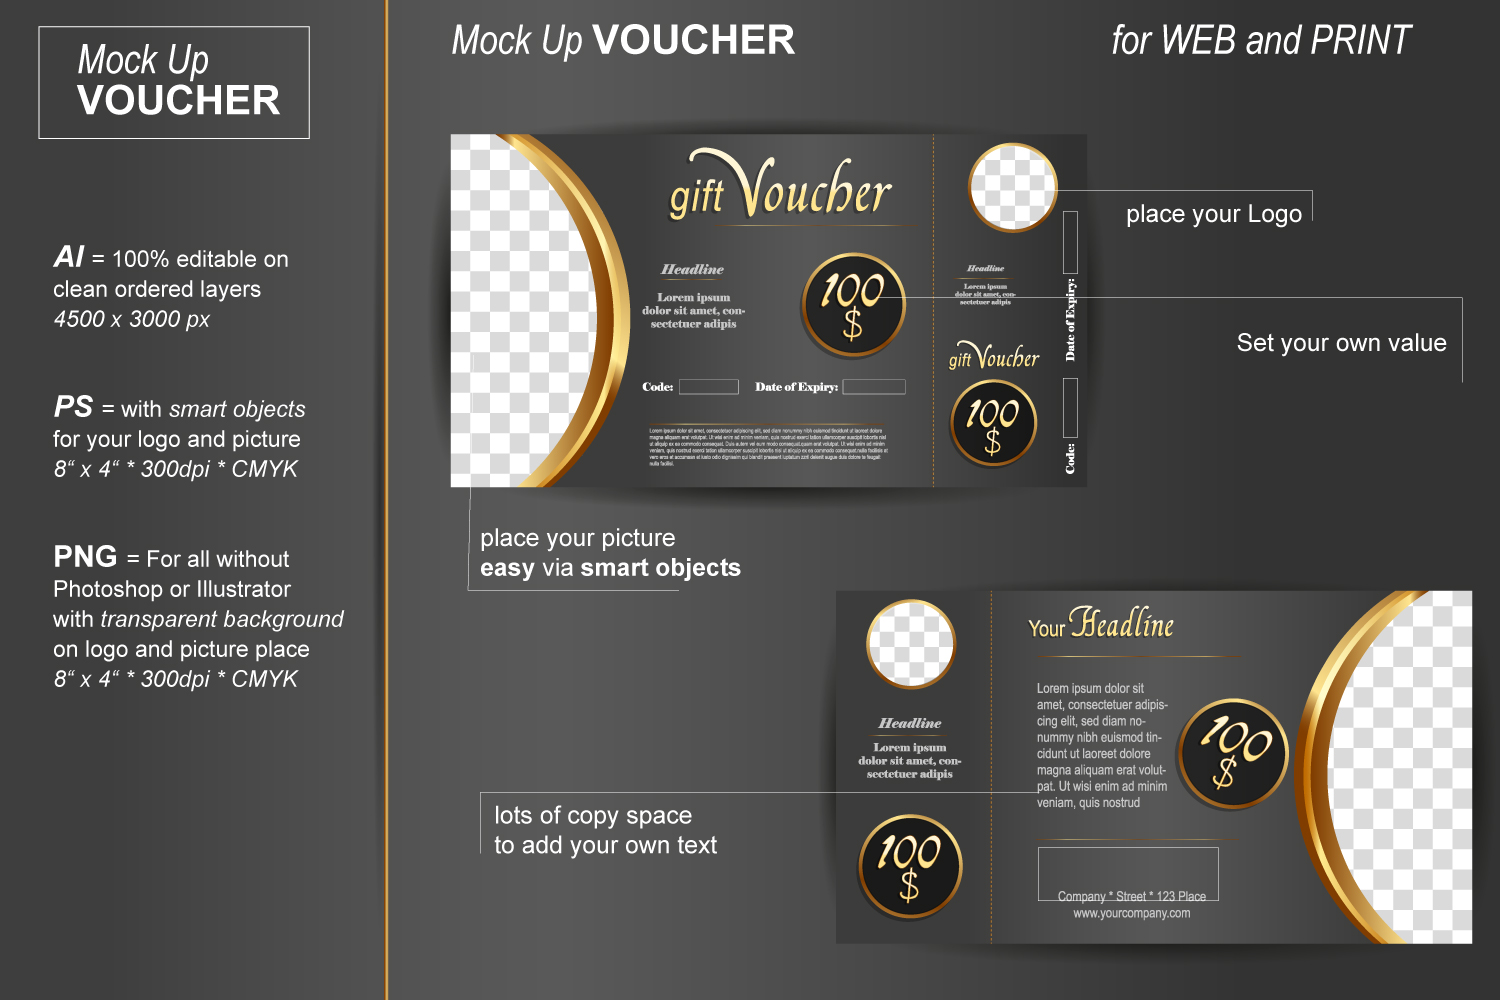 Template - Gift Voucher - Noble Gold example image 2